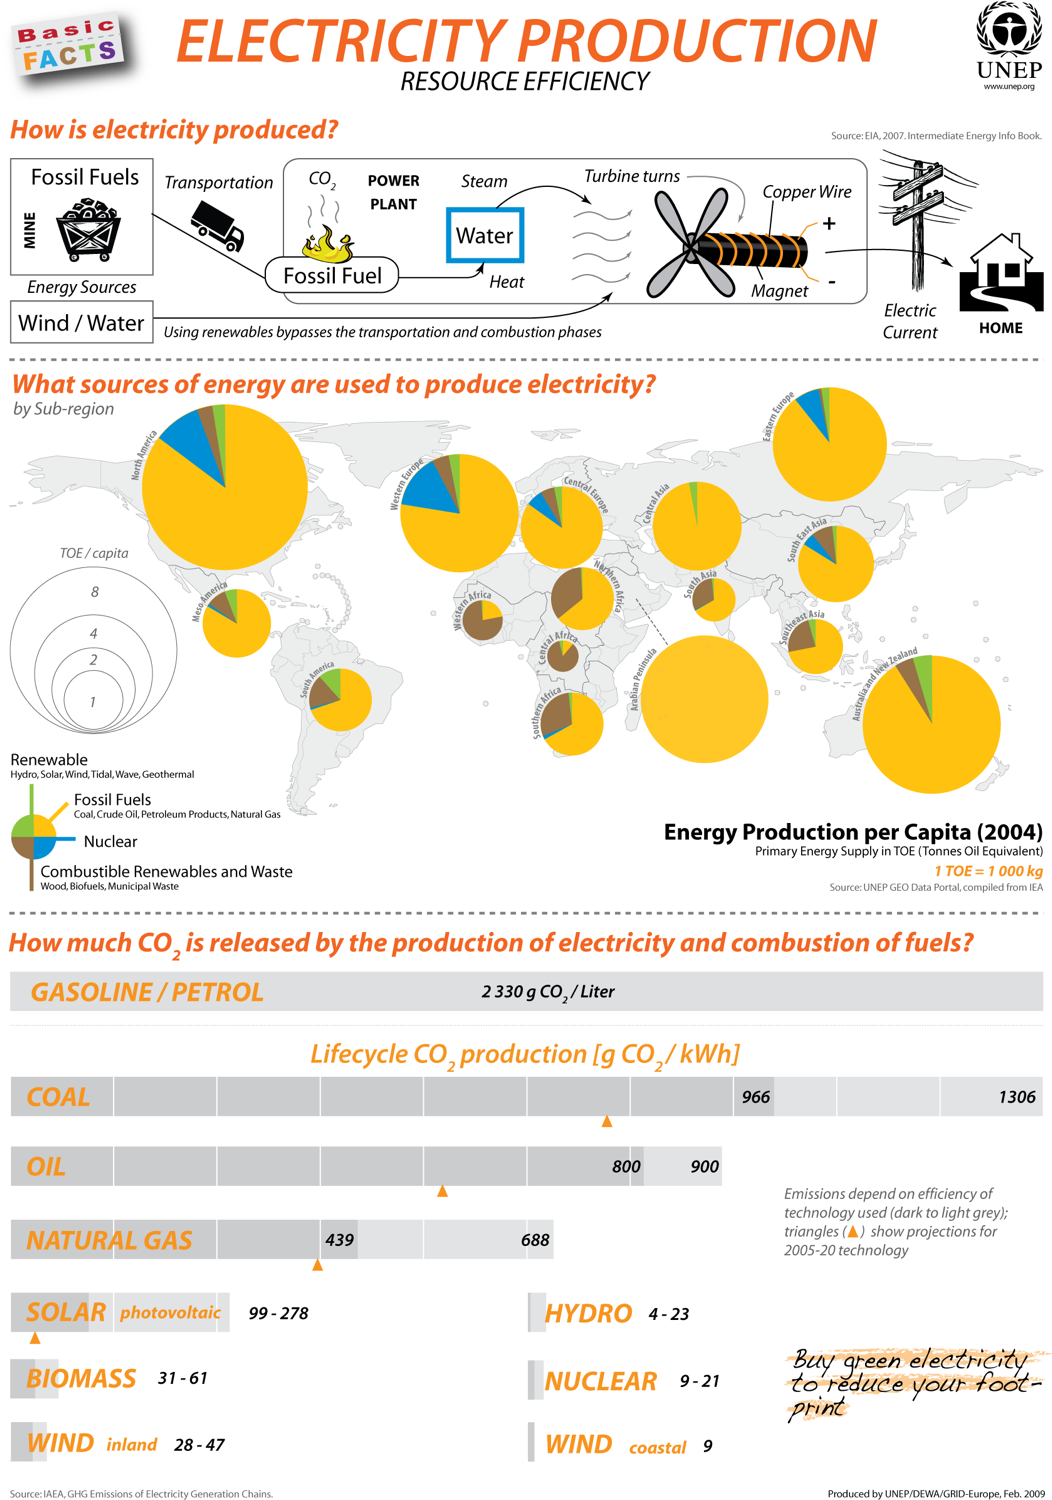 Unep environmental data explorer basic facts posters for Energy conservation facts